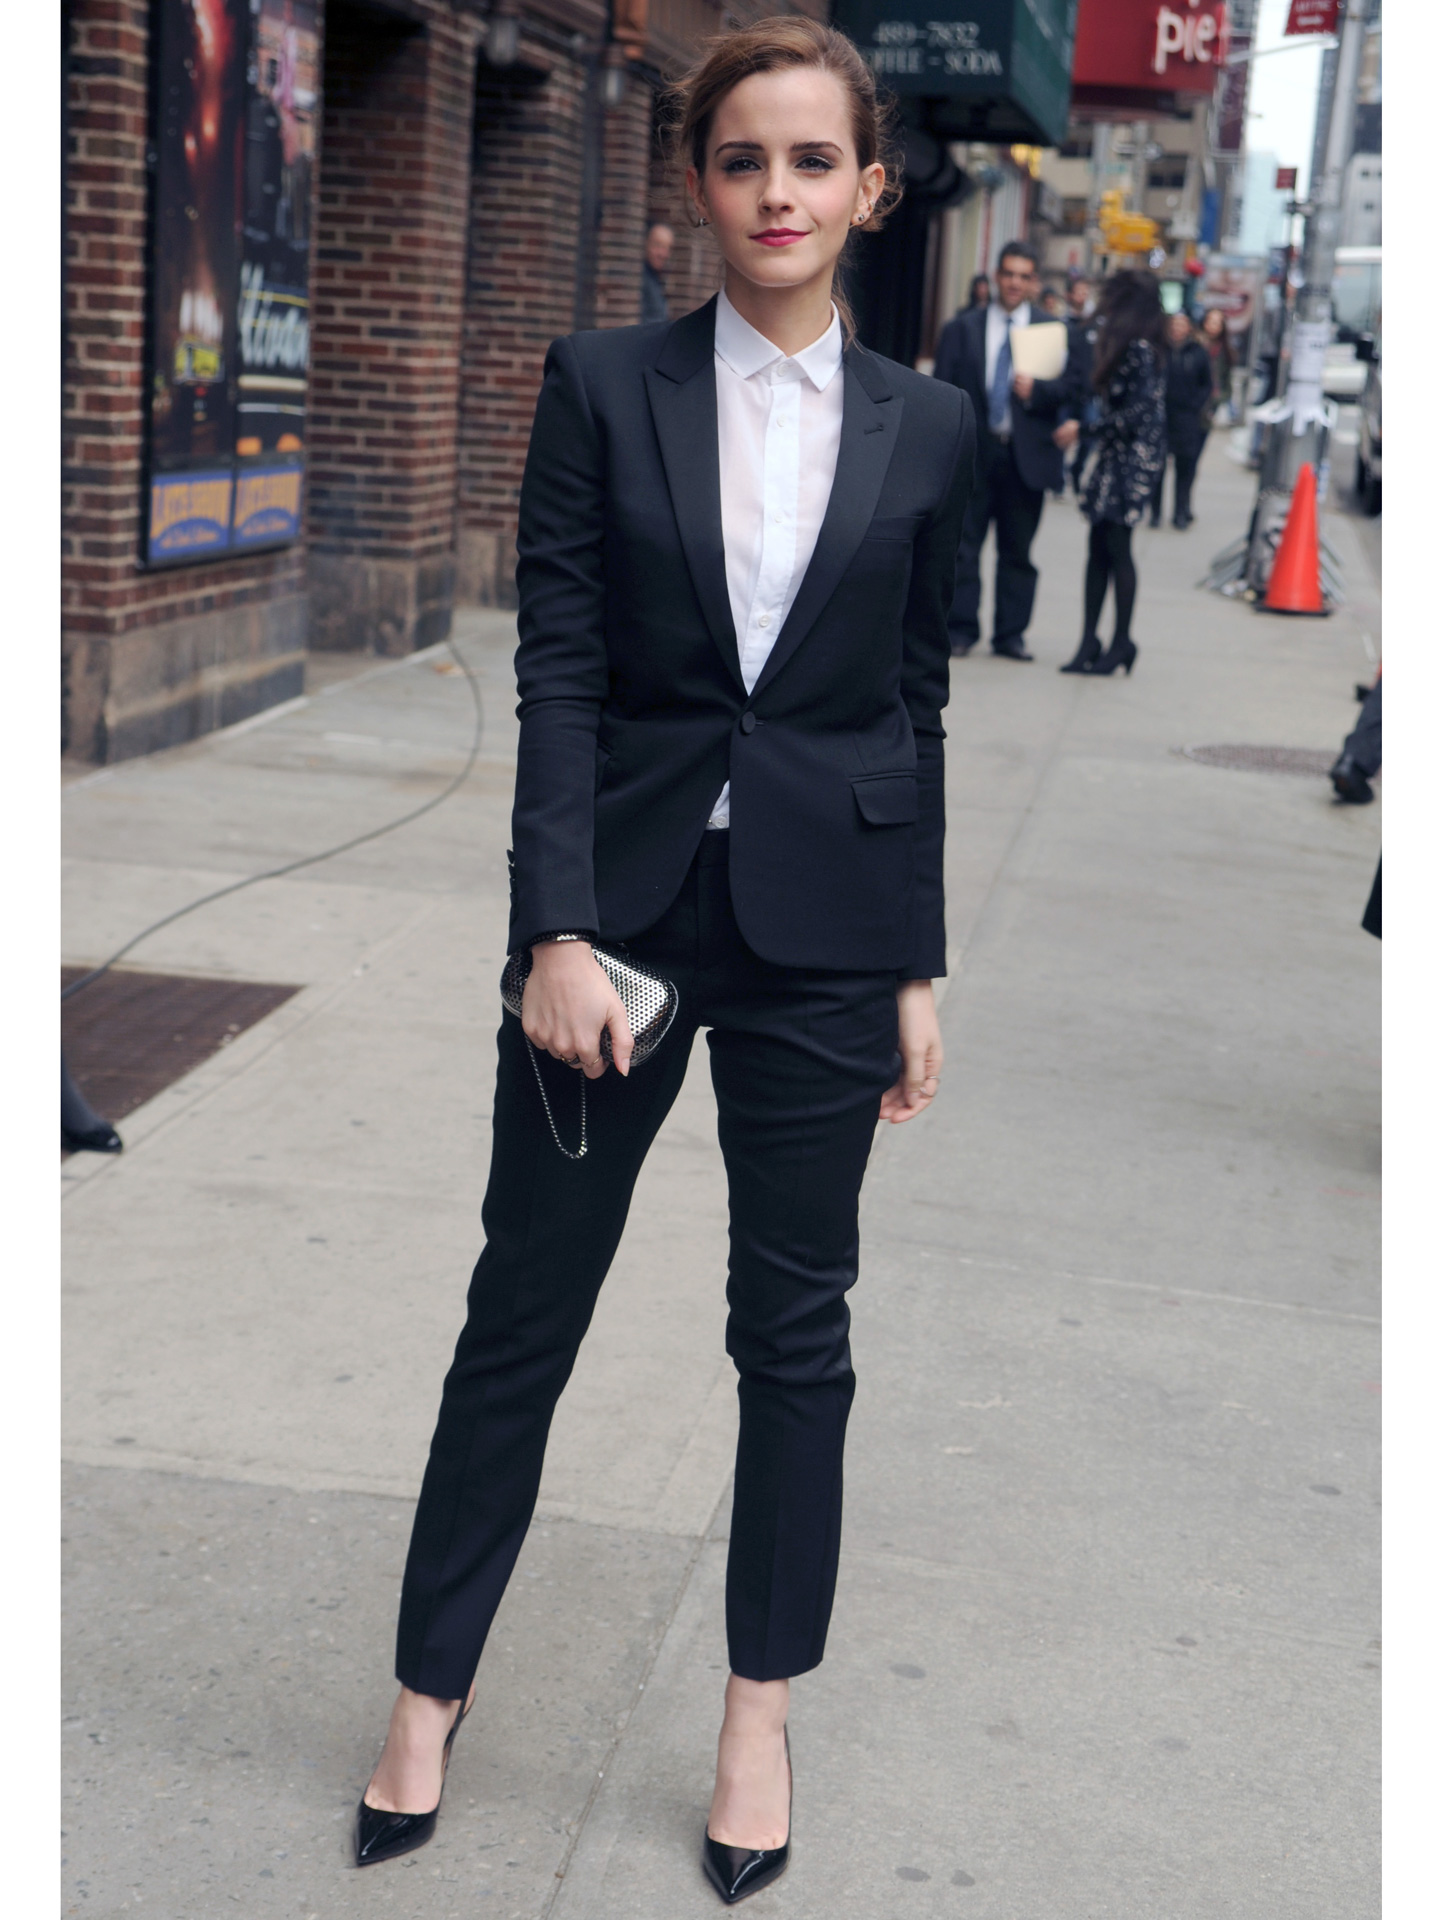 7 Ways To Wear Pants To Prom - Prom Jumpsuits And Pantsuits